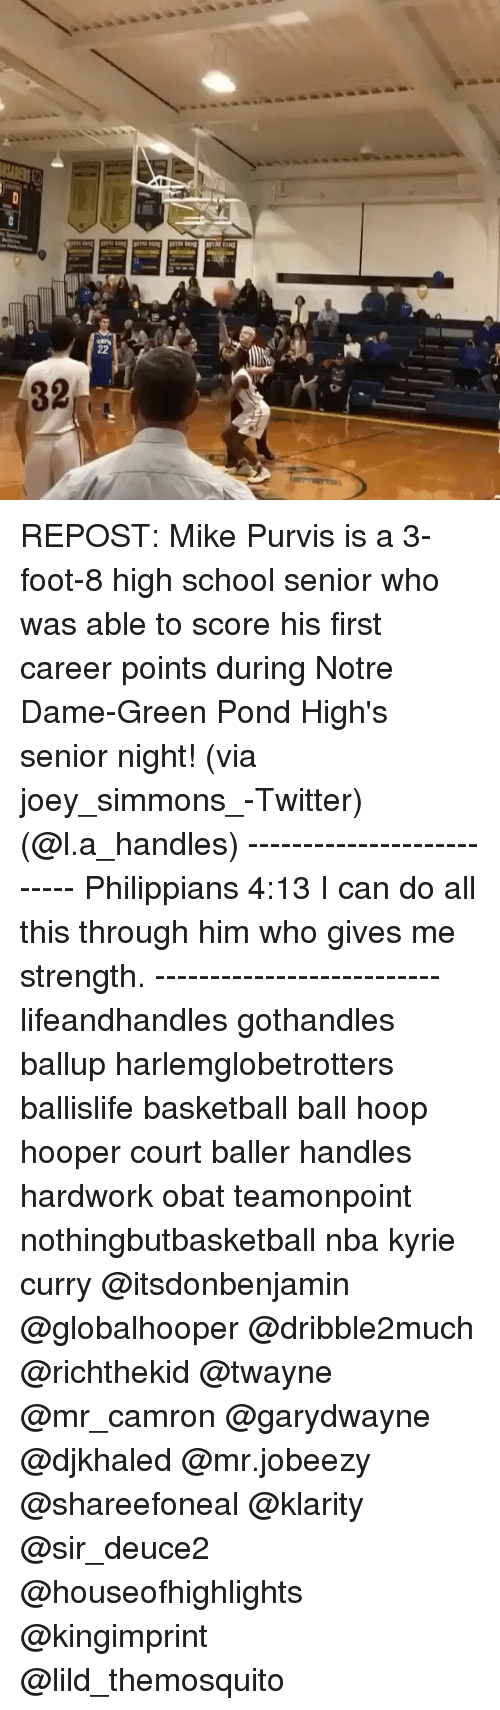 Memes, Notre Dame, and Camron: 22  32  hif REPOST: Mike Purvis is a 3-foot-8 high school senior who was able to score his first career points during Notre Dame-Green Pond High's senior night! (via joey_simmons_-Twitter) (@l.a_handles) -------------------------- Philippians 4:13 I can do all this through him who gives me strength. -------------------------- lifeandhandles gothandles ballup harlemglobetrotters ballislife basketball ball hoop hooper court baller handles hardwork obat teamonpoint nothingbutbasketball nba kyrie curry @itsdonbenjamin @globalhooper @dribble2much @richthekid @twayne @mr_camron @garydwayne @djkhaled @mr.jobeezy @shareefoneal @klarity @sir_deuce2 @houseofhighlights @kingimprint @lild_themosquito